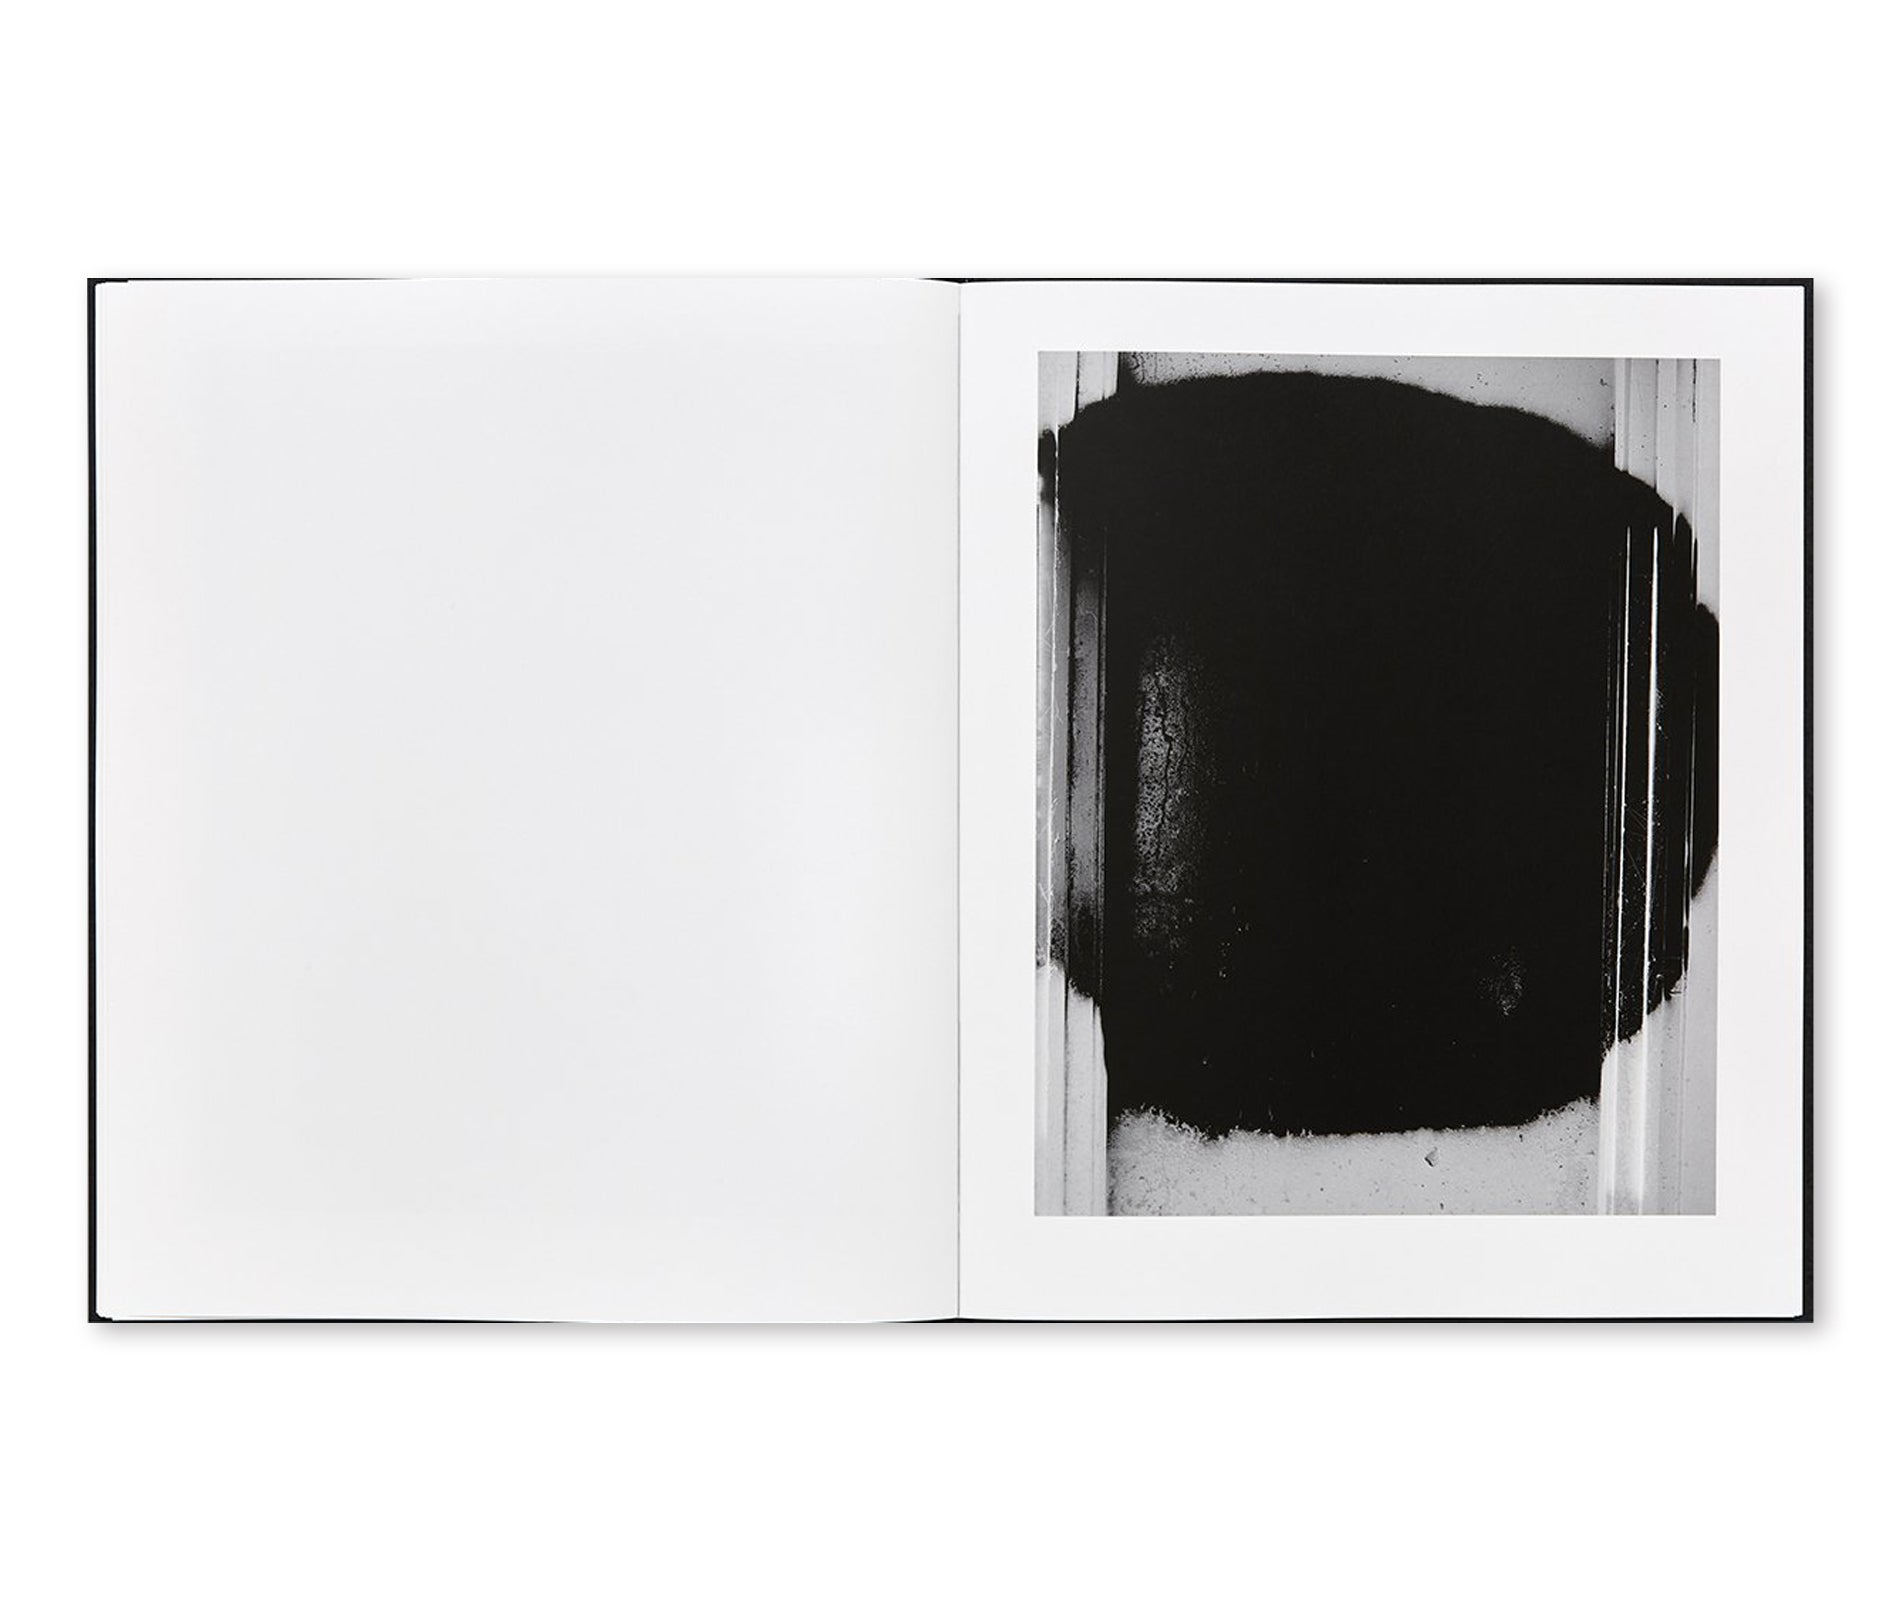 TERMINUS by John Divola [SIGNED]